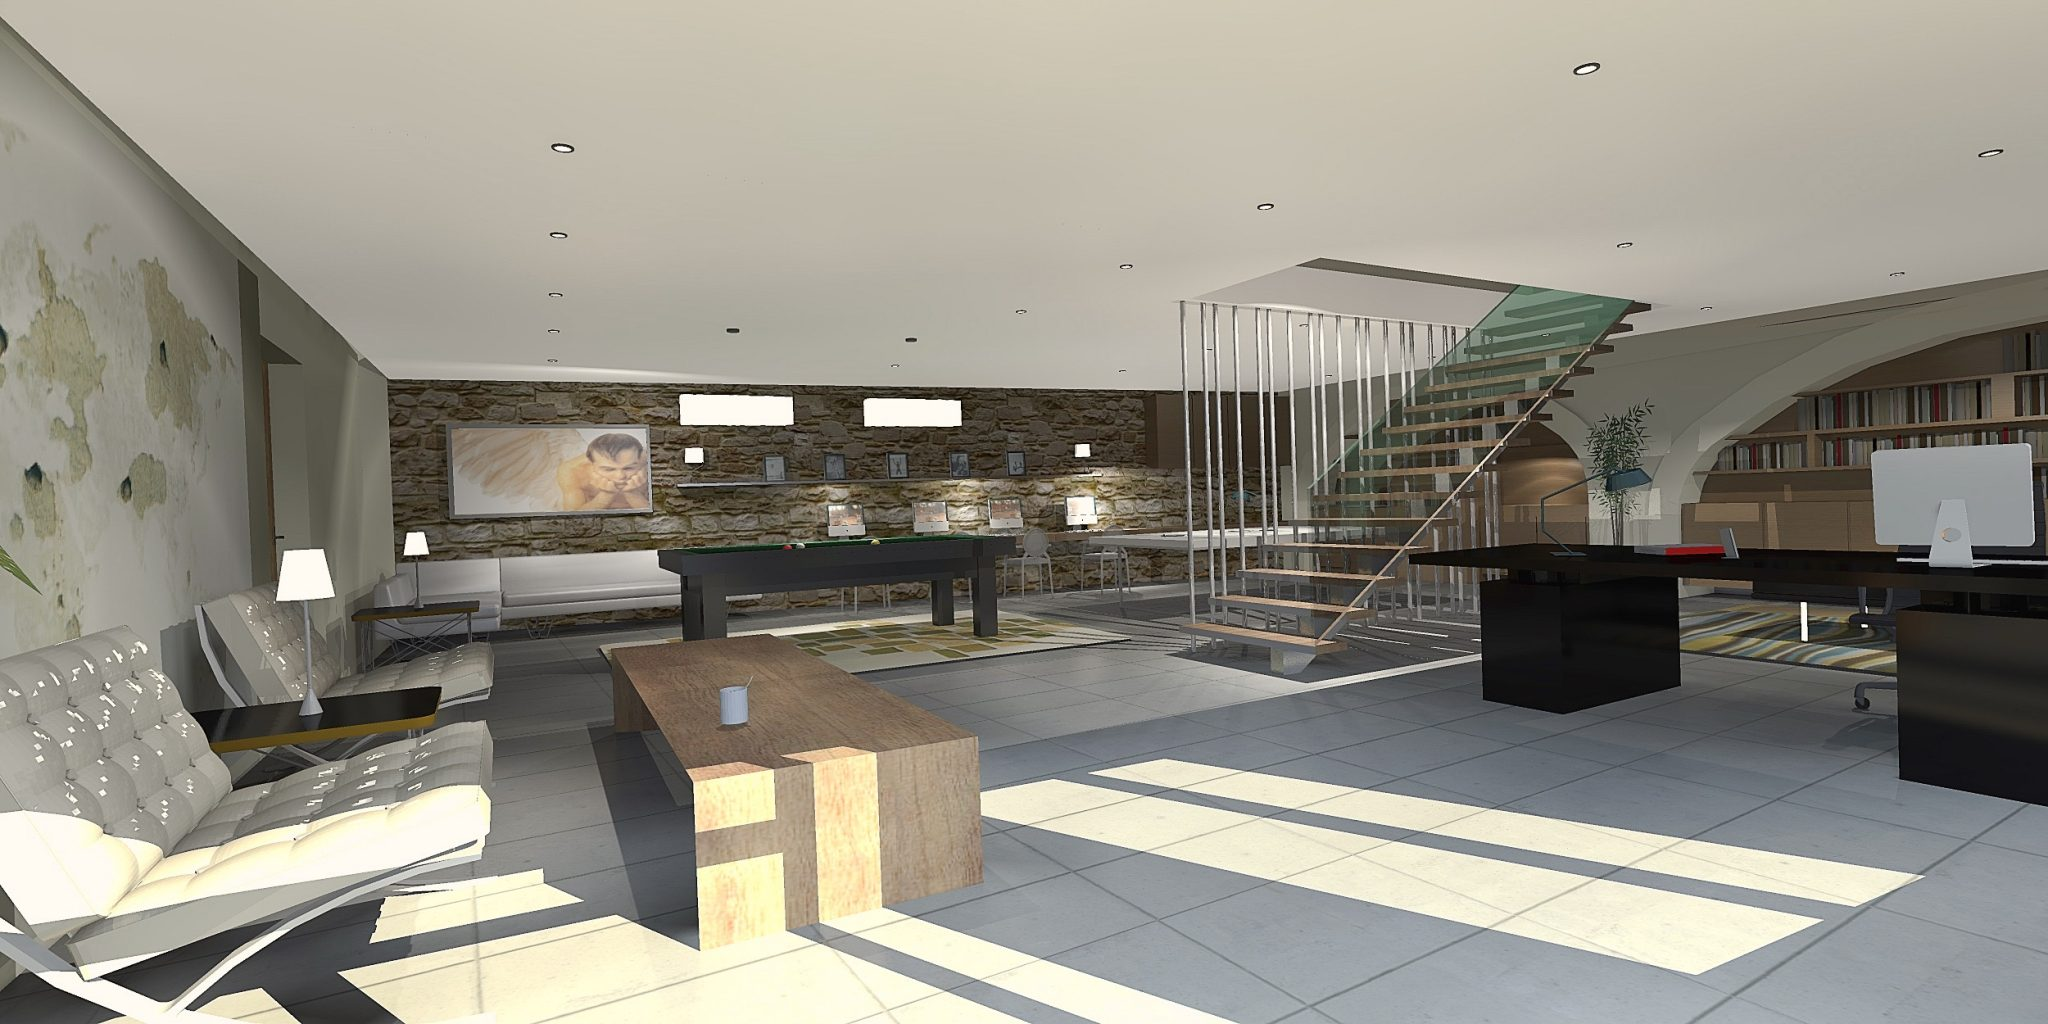 3D perspective interieur design 2